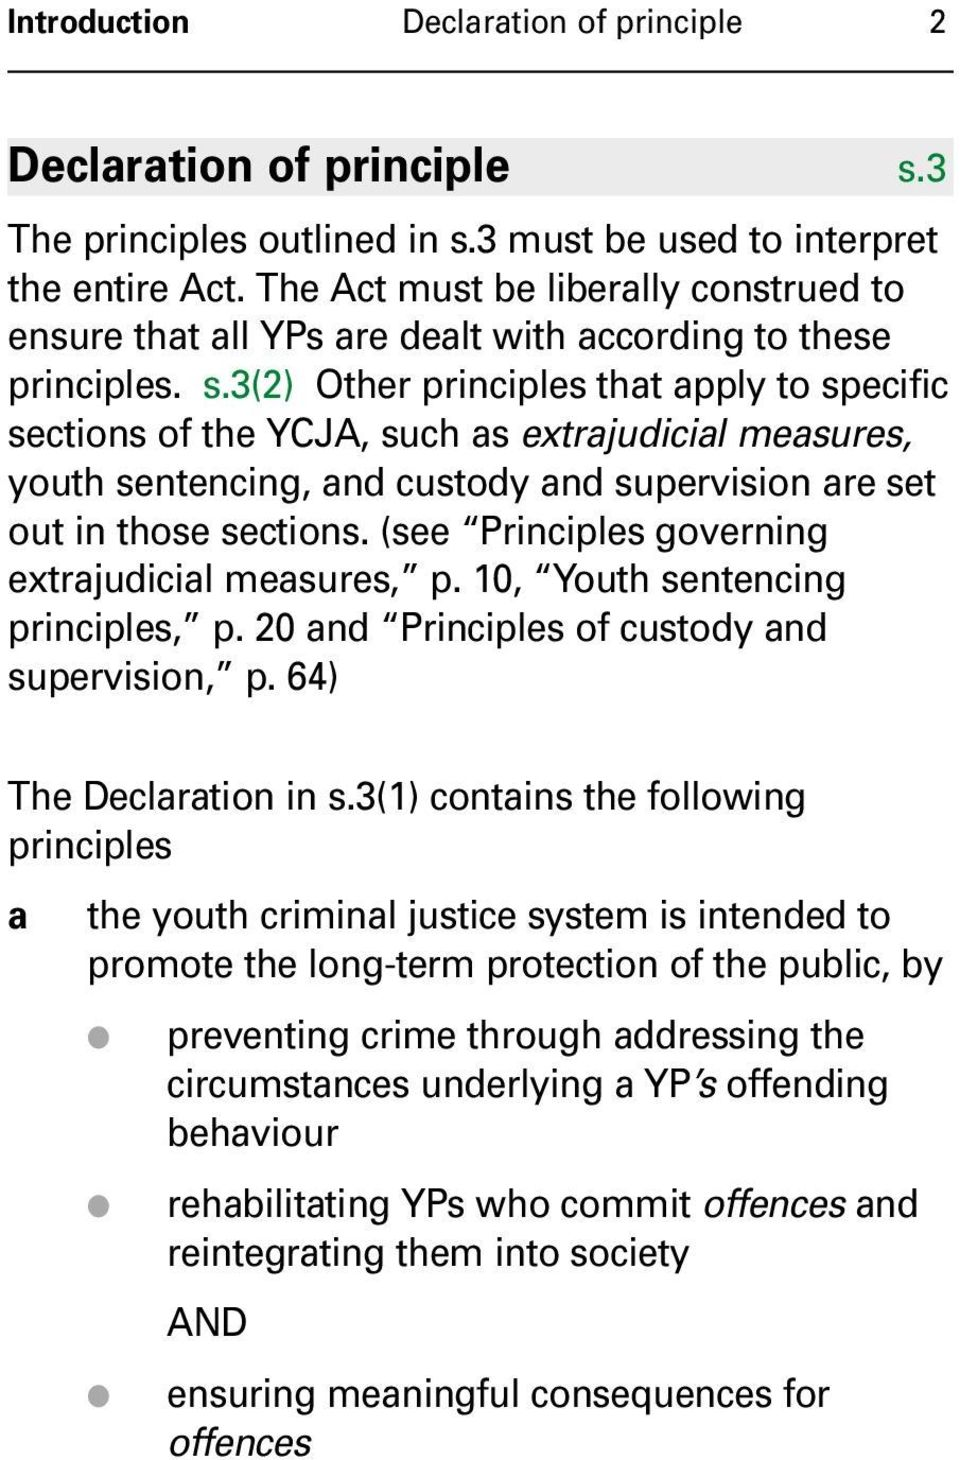 3(2) Other principles that apply to specific sections of the YCJA, such as extrajudicial measures, youth sentencing, and custody and supervision are set out in those sections.